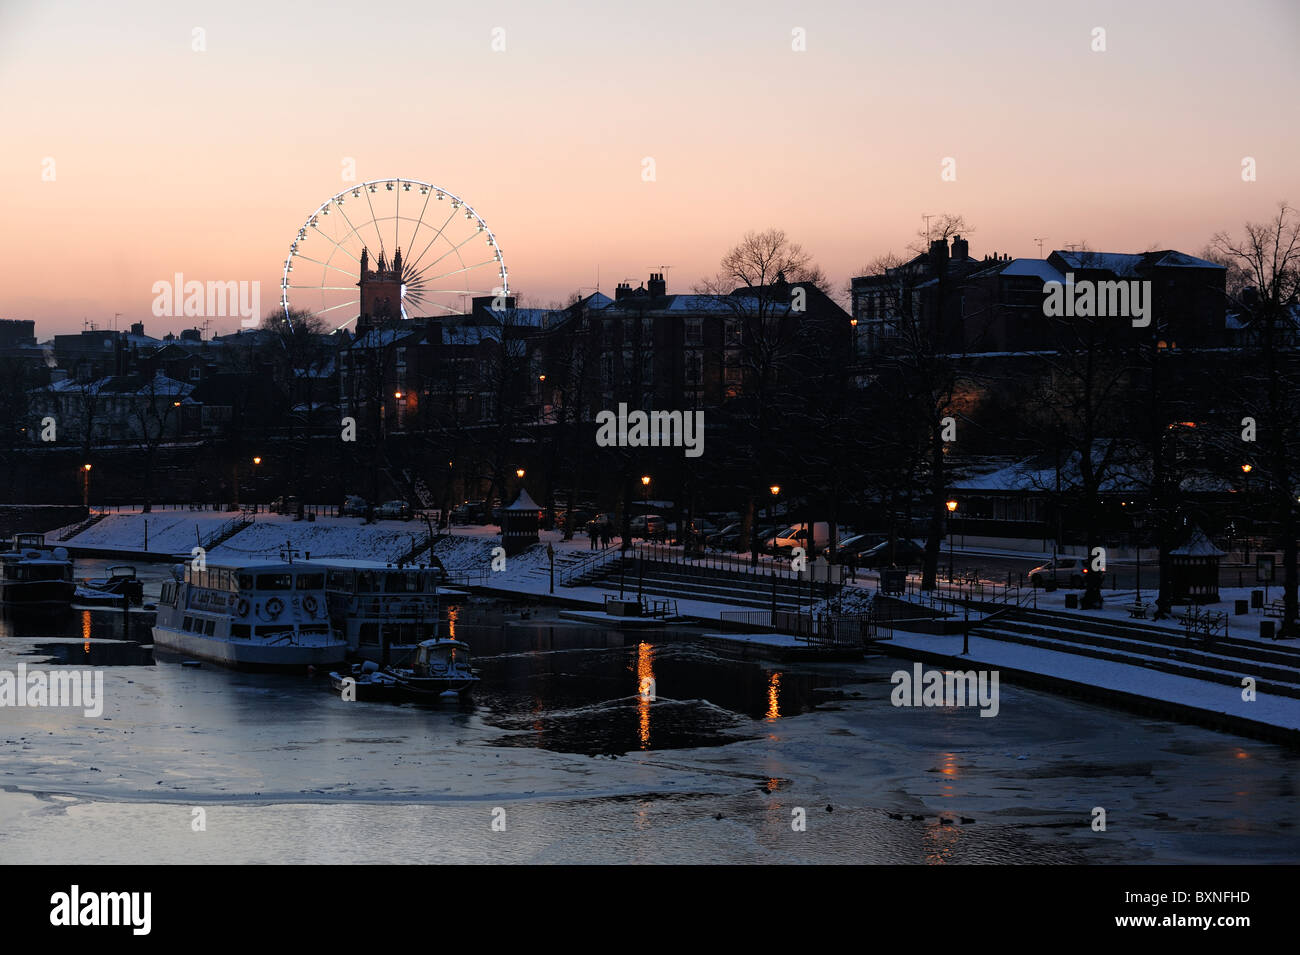 Chester Wheel and River Dee at dusk - Stock Image